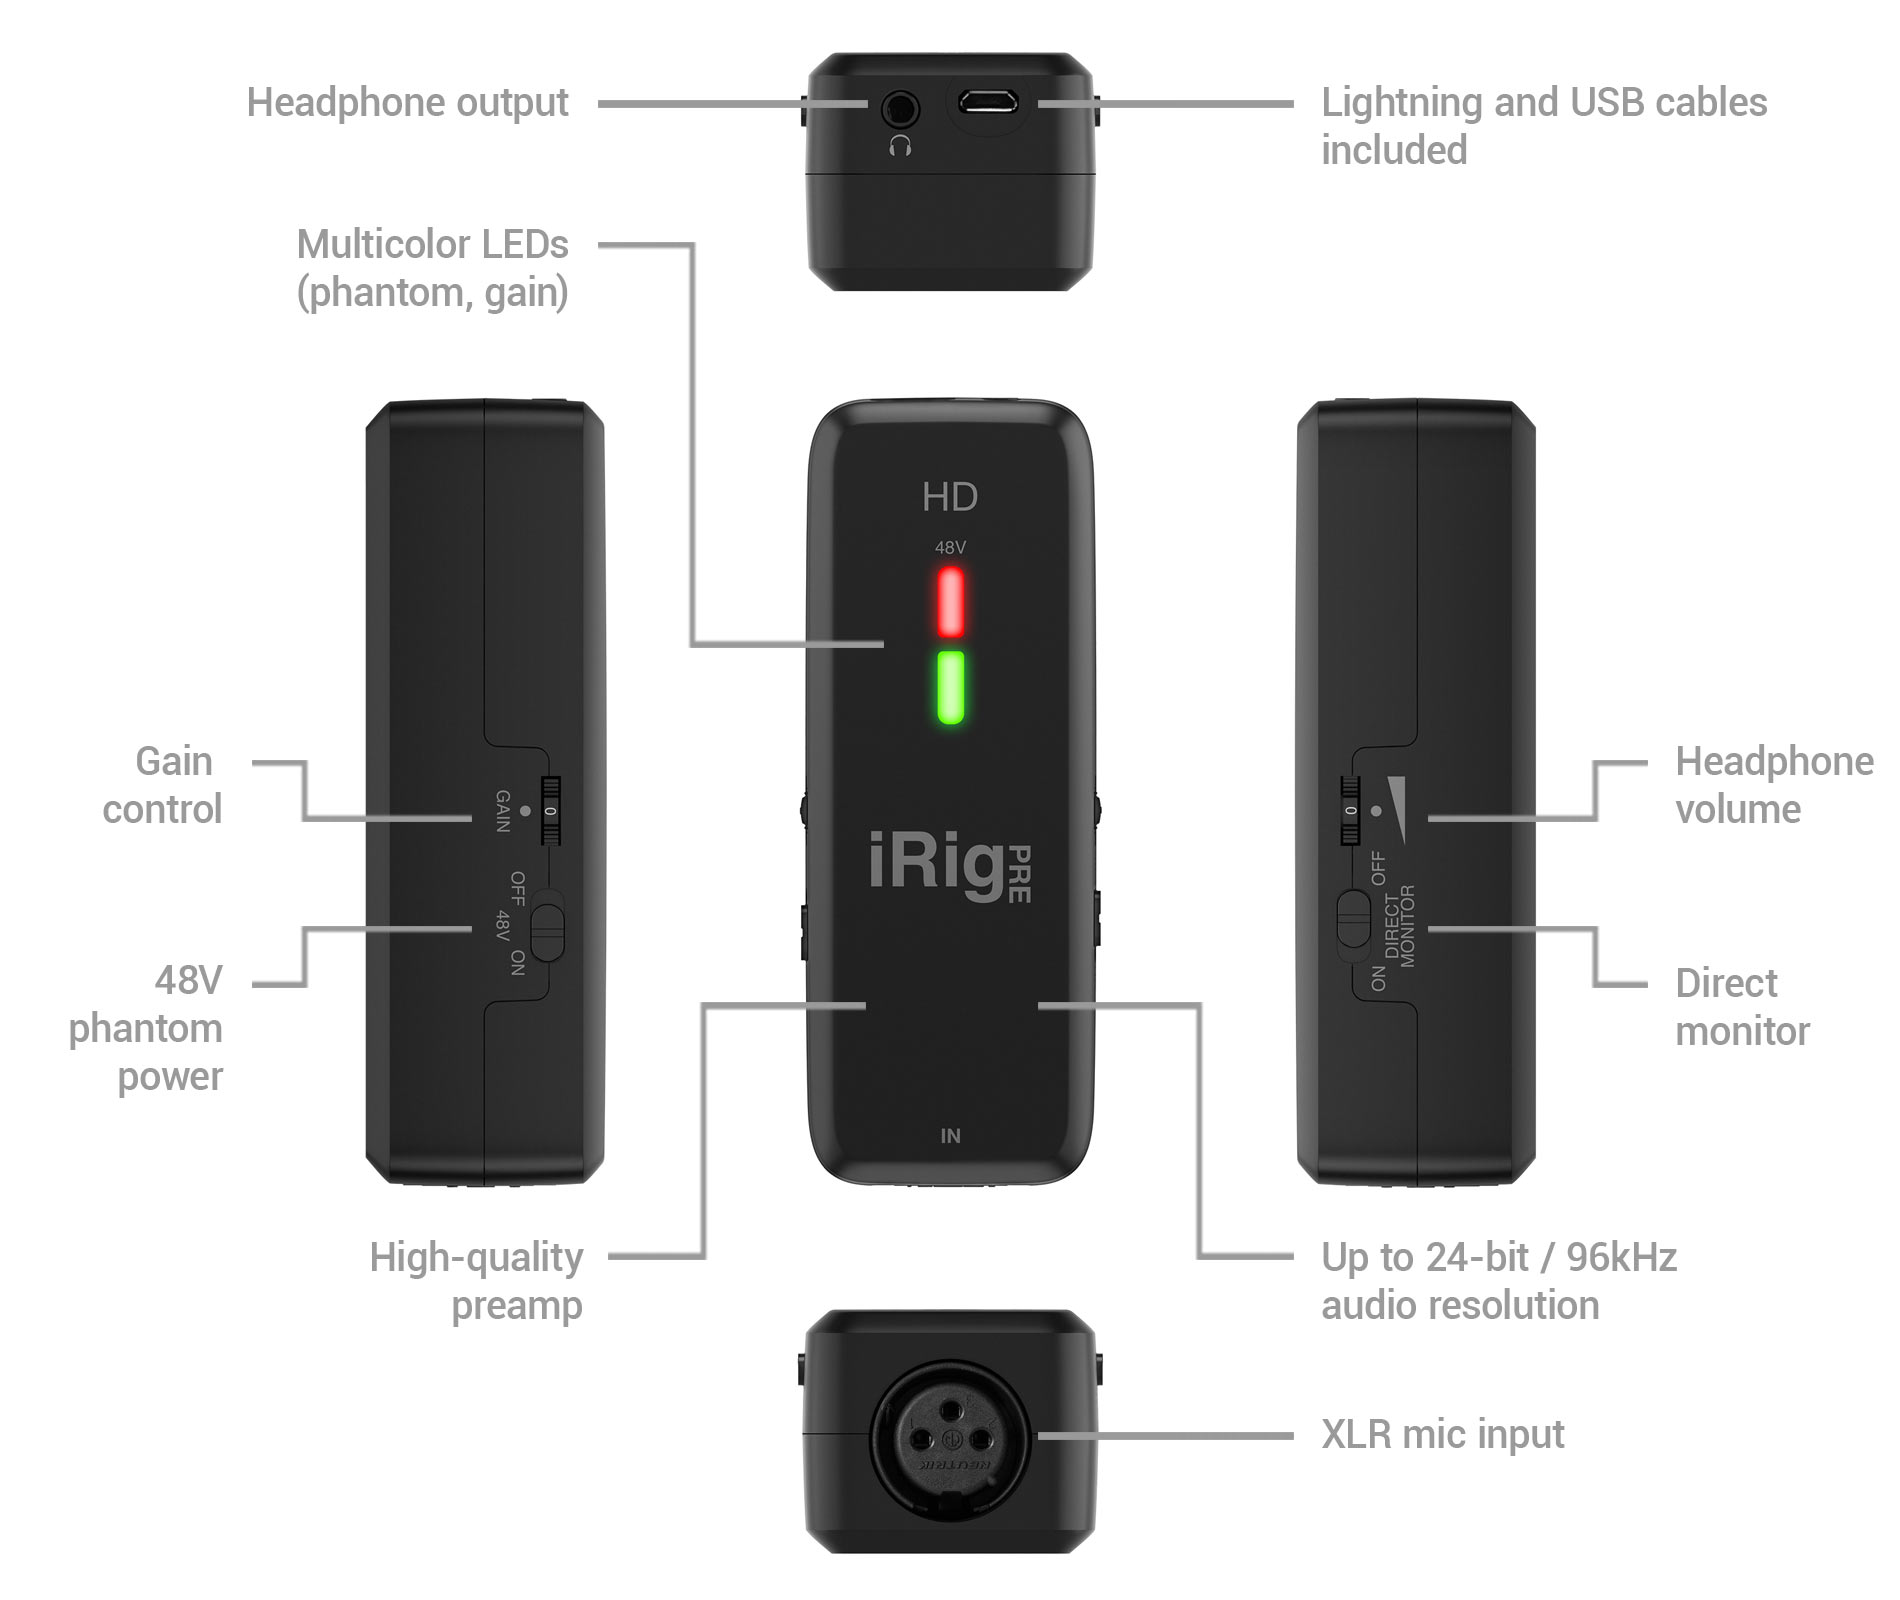 Ik Multimedia Irig Pre Hd Battery Slide Switch As Well Dynamic Microphone Circuit Diagram Its Integrated High Quality Class A Preamp Ensures That You Can Easily Record The Full Dynamics Of Sound Being Captured By Your Down To